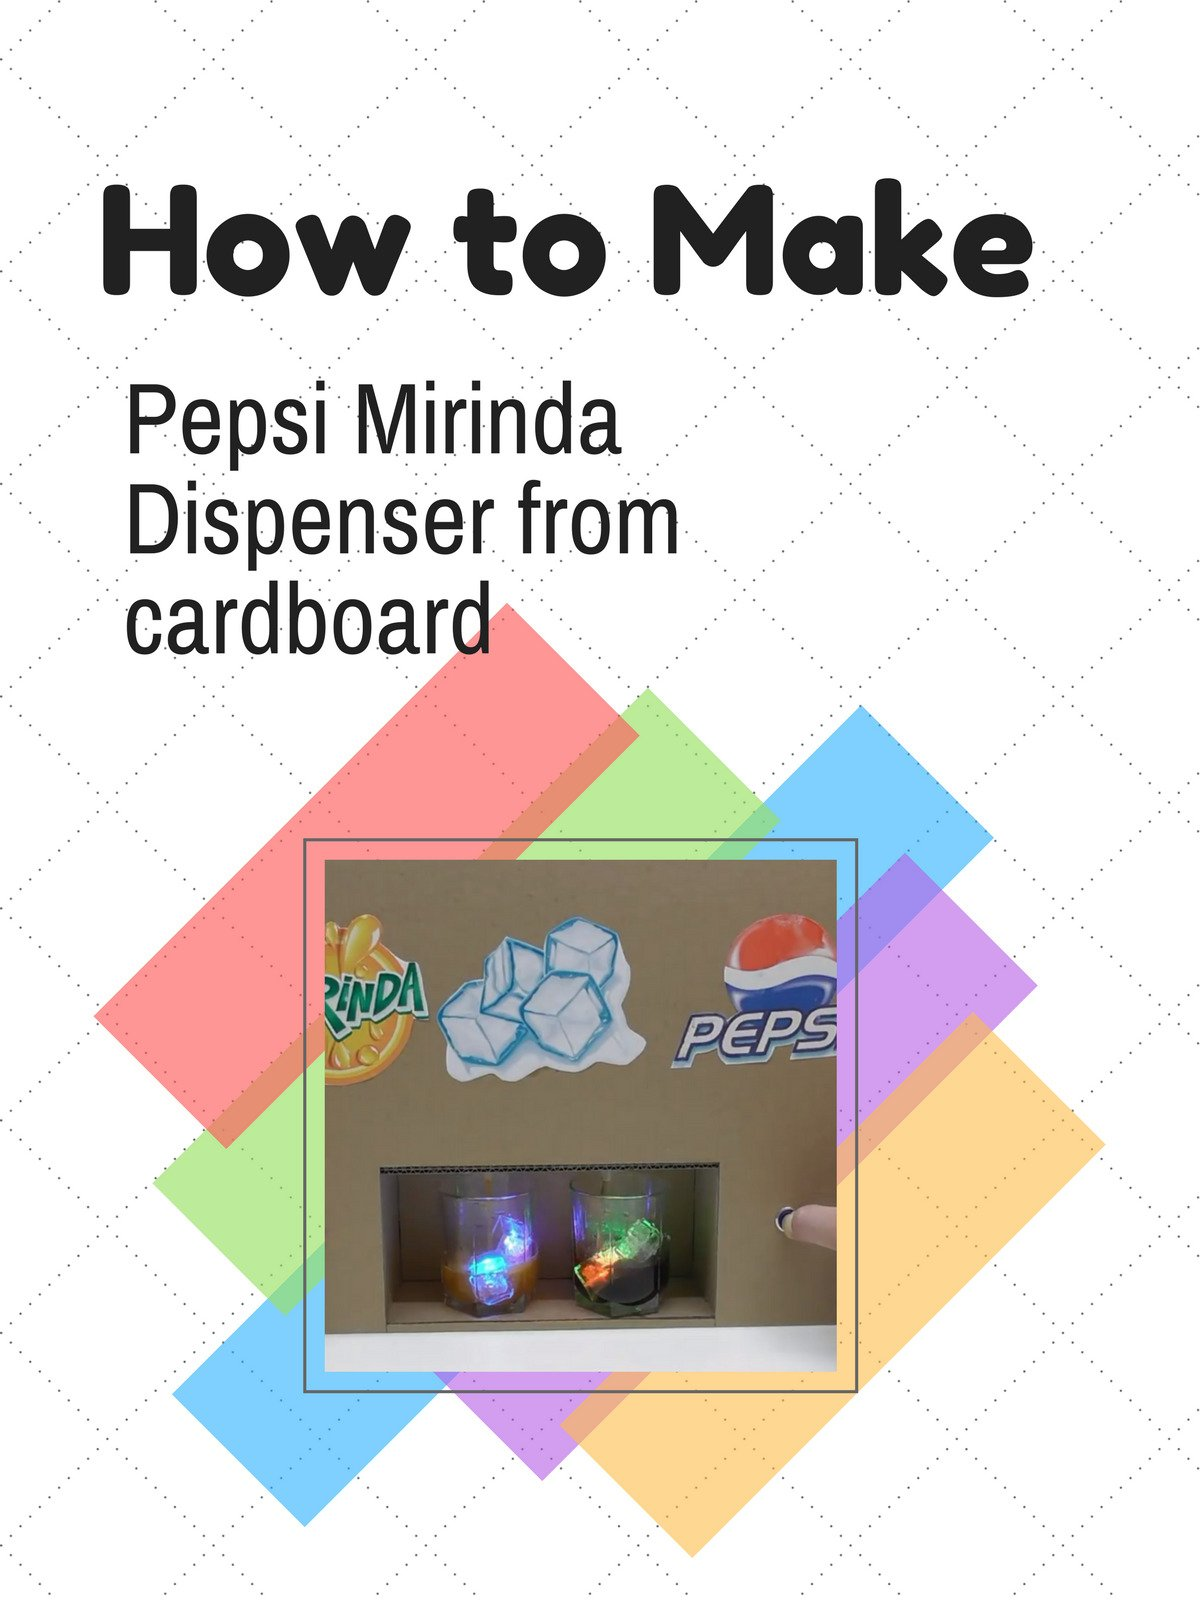 How to Make Pepsi Mirinda Dispenser from cardboard